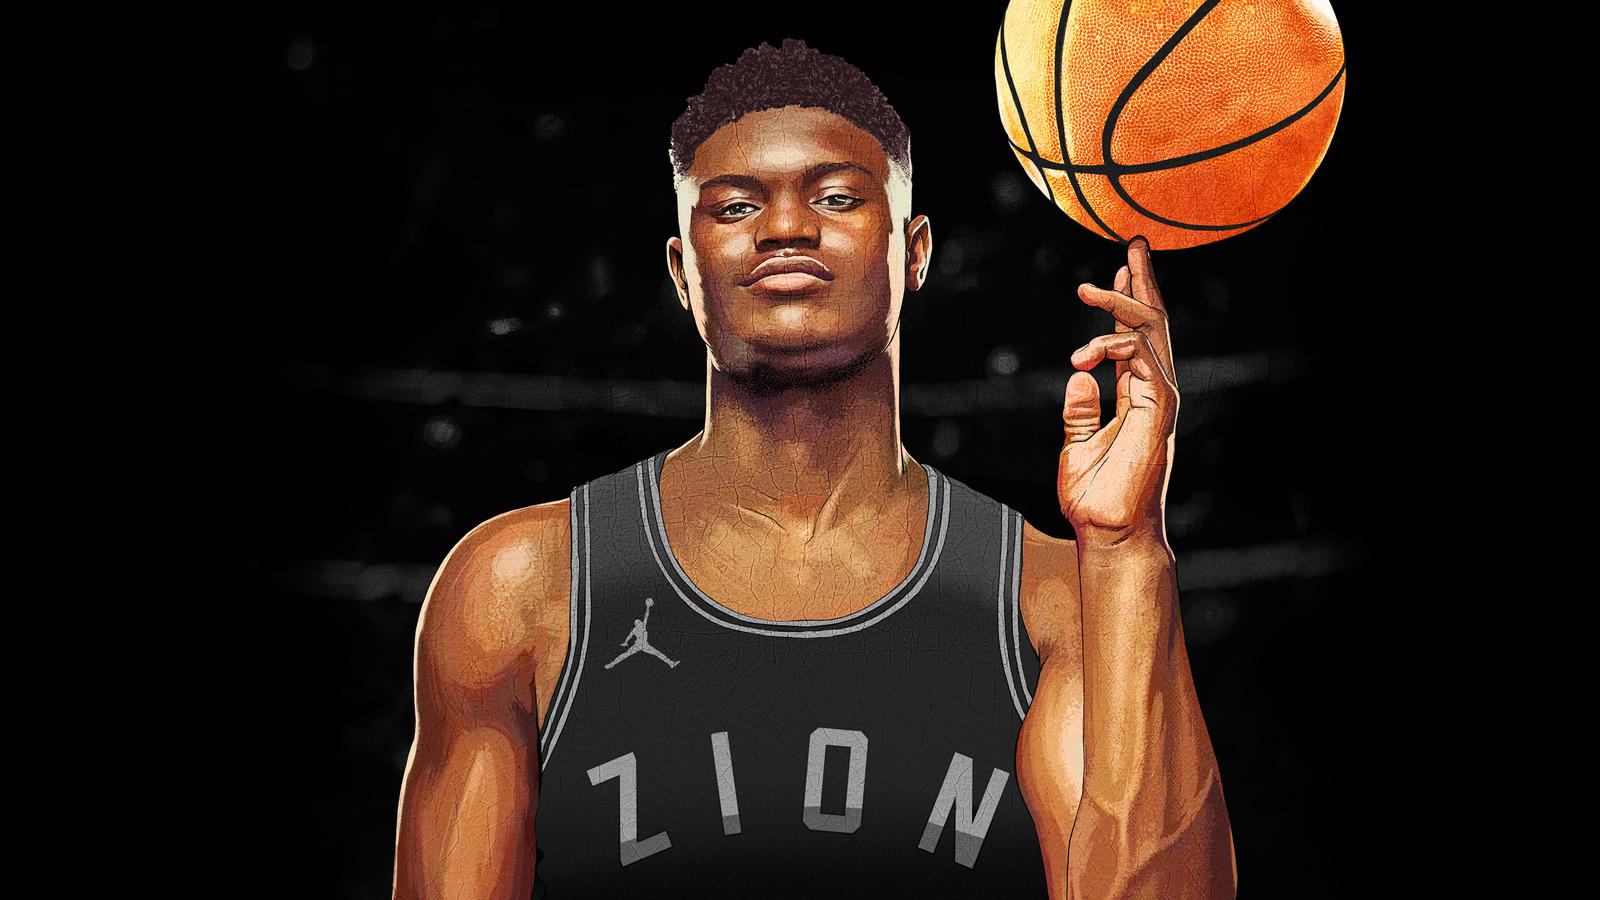 Zion signs sneaker deal with Nike's Jordan Brand